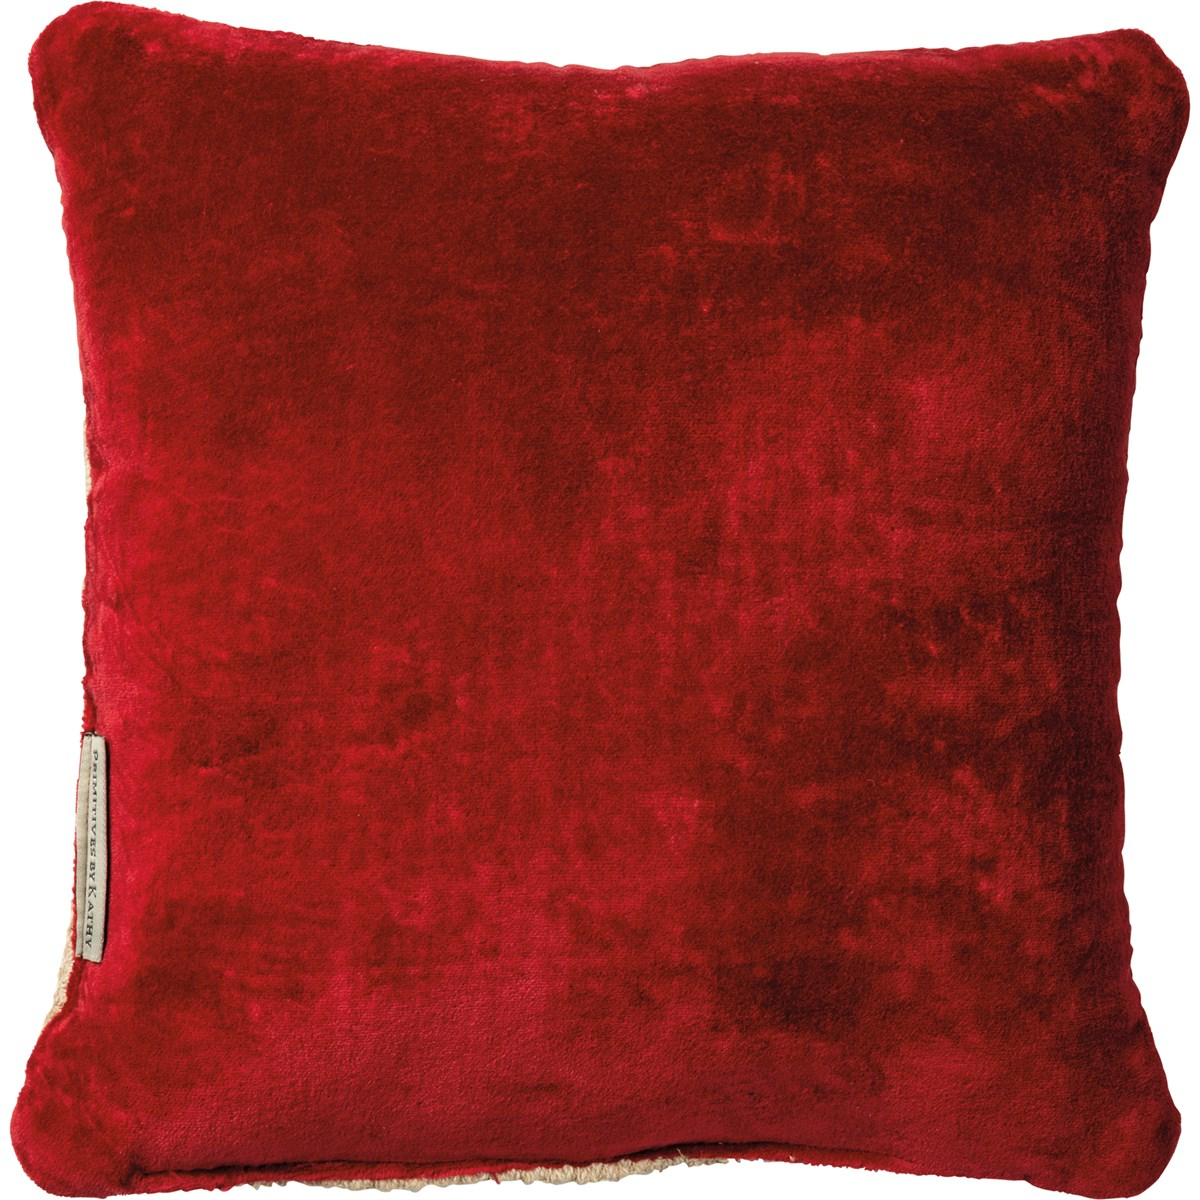 "Pillow - Joy - 10"" x 10"" - Cotton, Velvet"